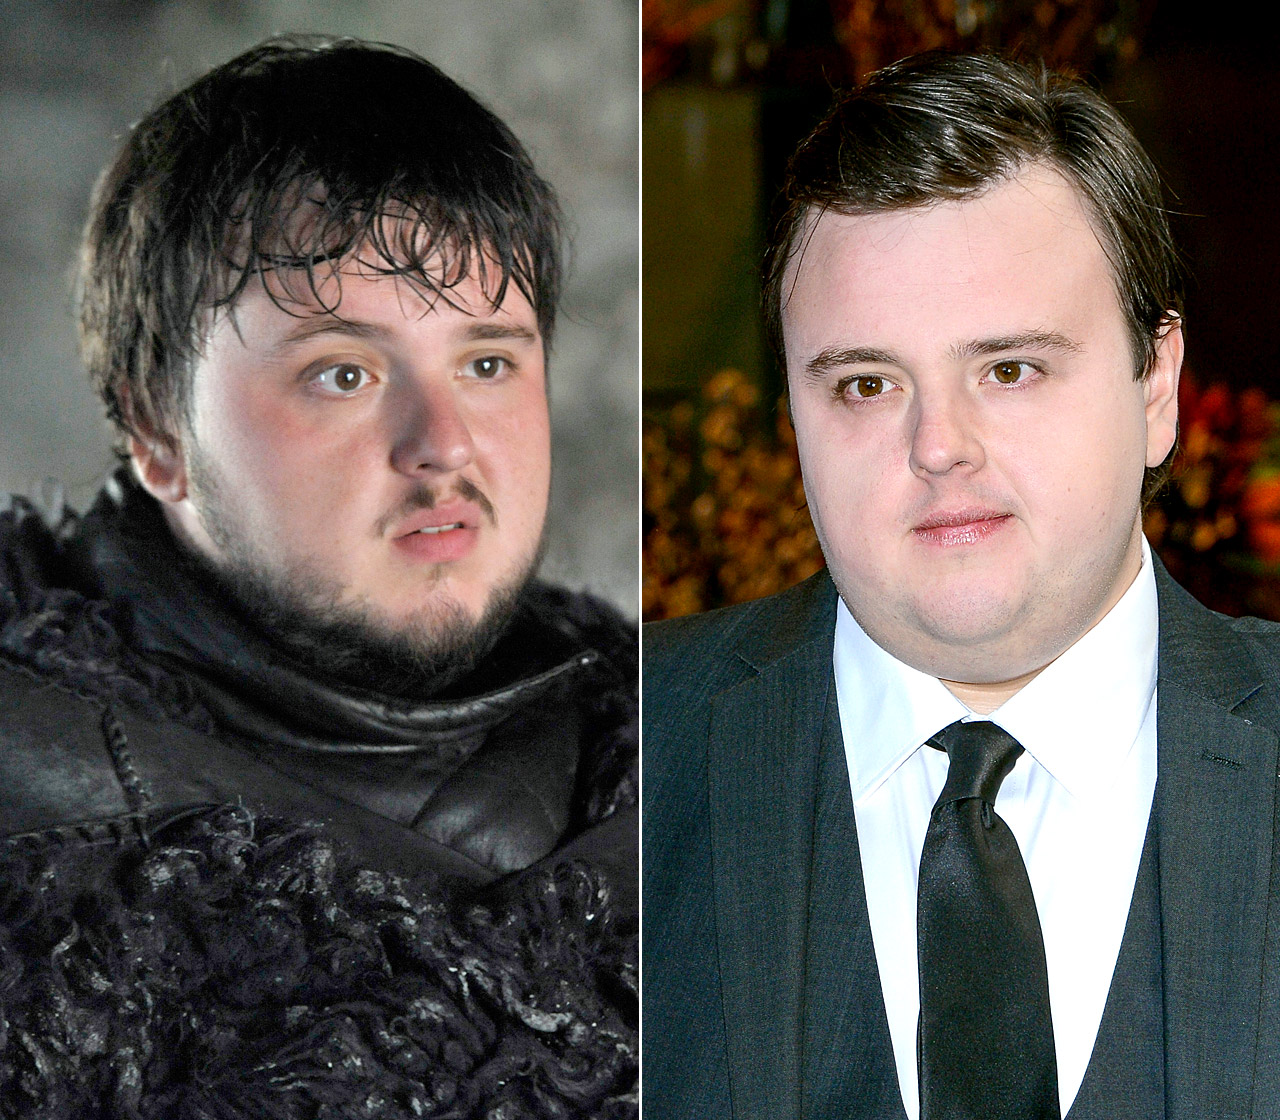 Bradley plays the intelligent and sensitive member of the Night's Watch and Jon Snow's best friend, Samwell Tarly, on the series, but, in real life, he is no cowardly lion. The actor boasts many actings credits, which include TV series Borgia and the big-screen adaptation of Anna Karenina , starring Keira Knightley .